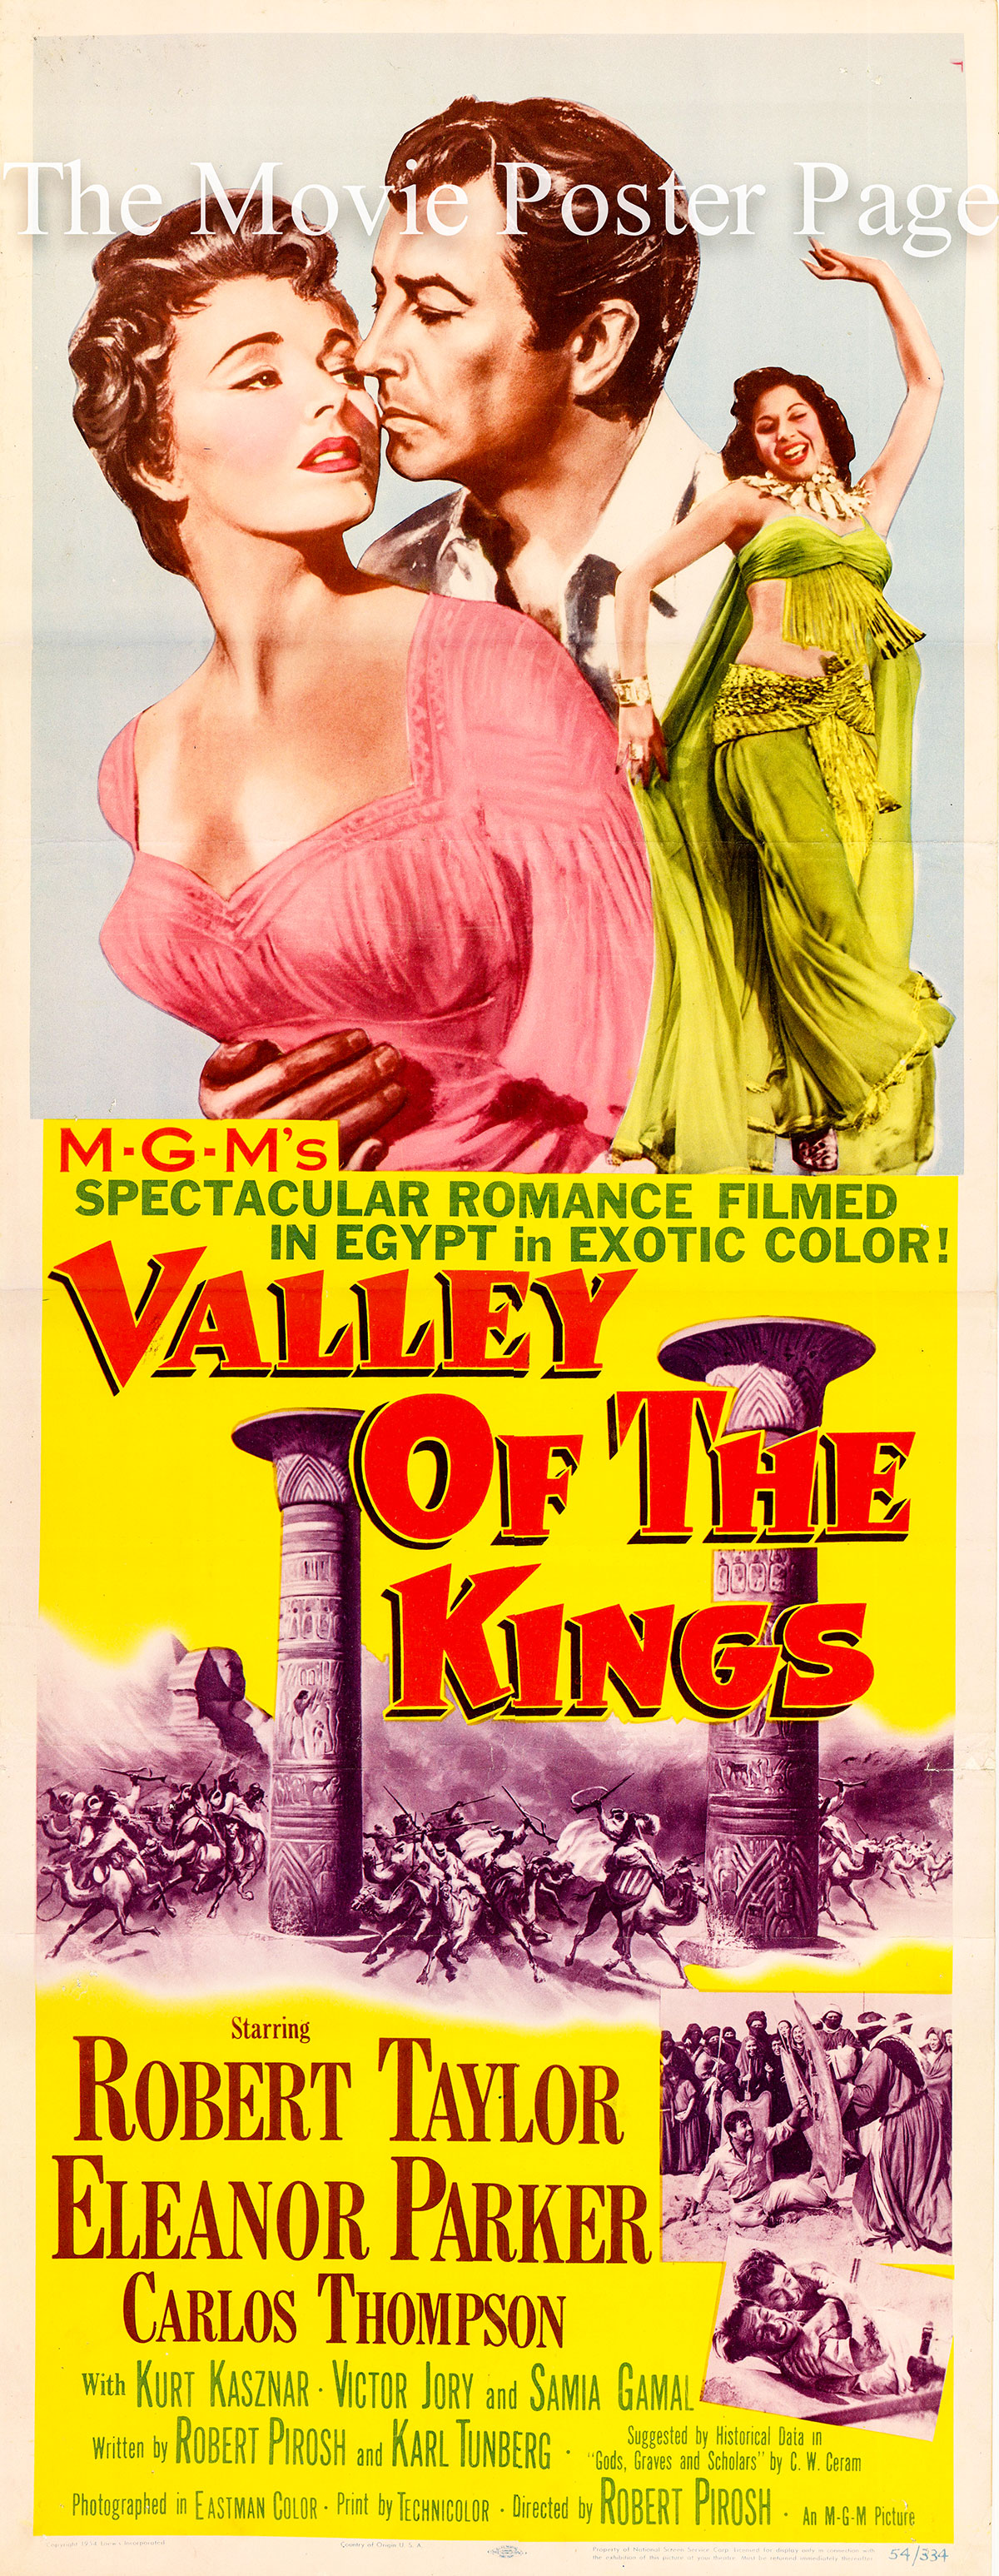 Pictured is a US insert poster for the 1954 Robert Pirosh film Valley of the Kings starring Robert Taylor, featuring an image of Samia Gamal doing the Dance of the Houris.